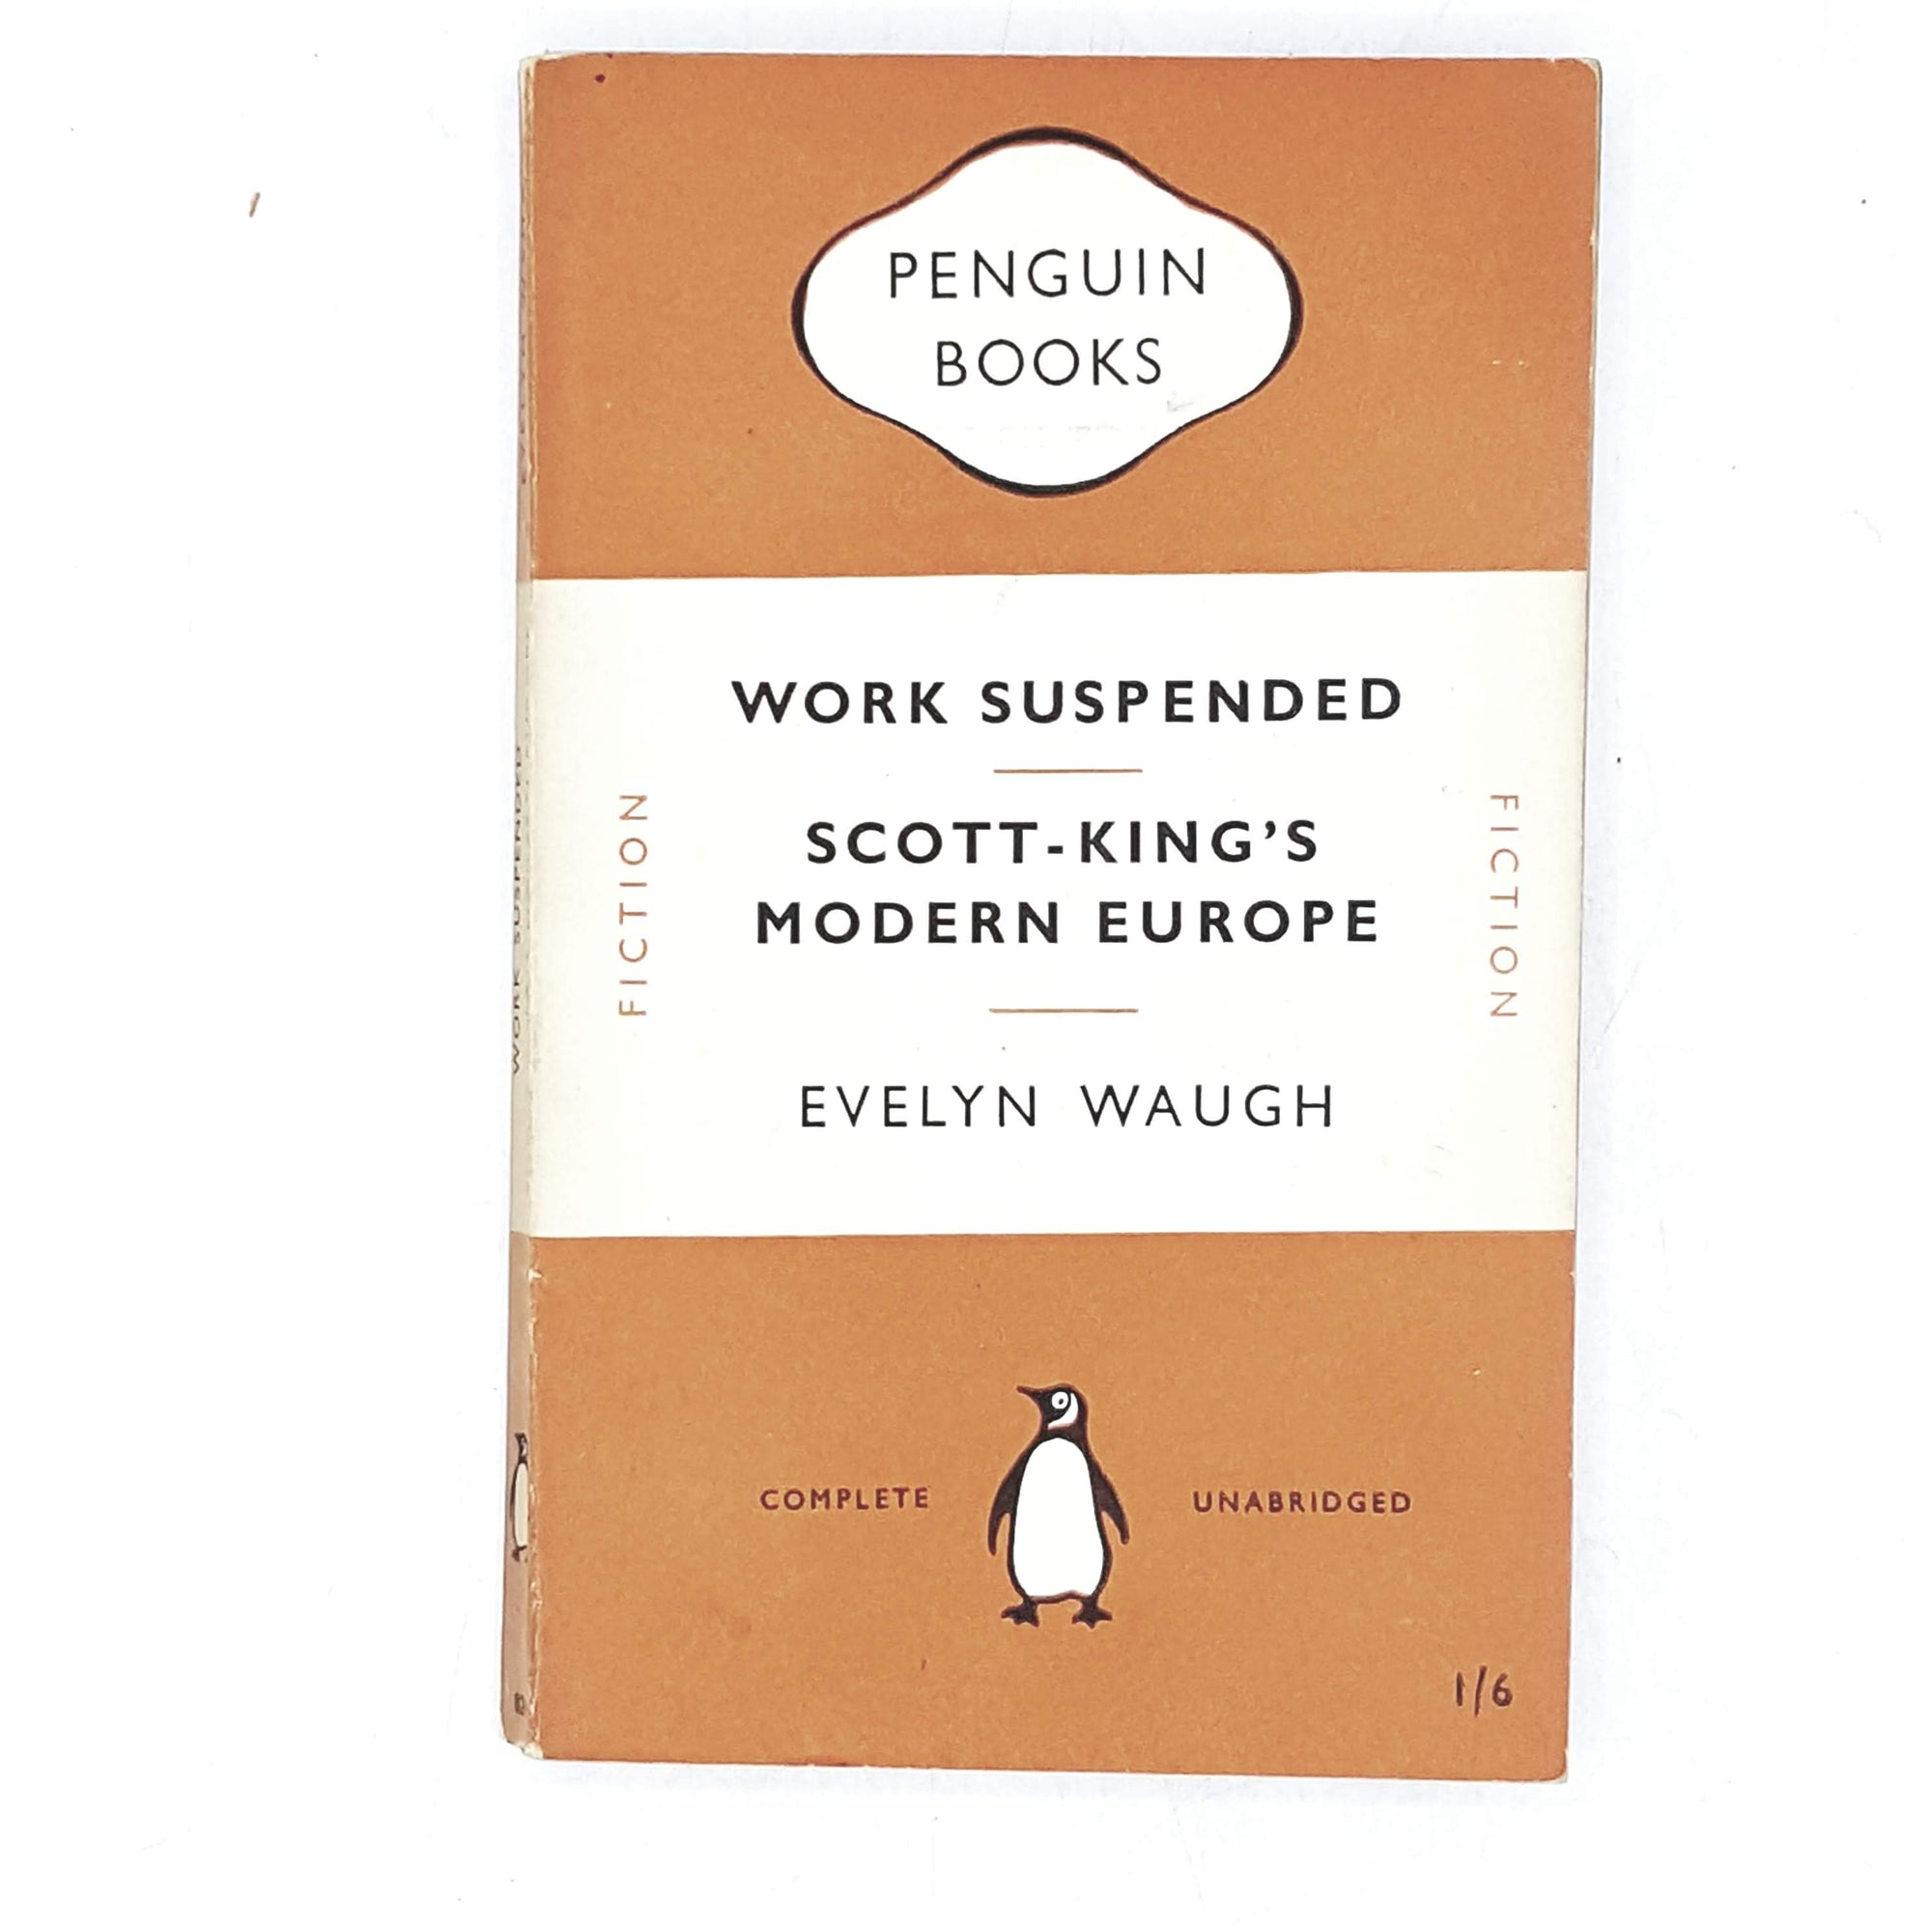 tage-penguin-work-suspended-scott-kings-modern-europe-by-evelyn-waugh-1951-orange-classic-literature-country-house-library